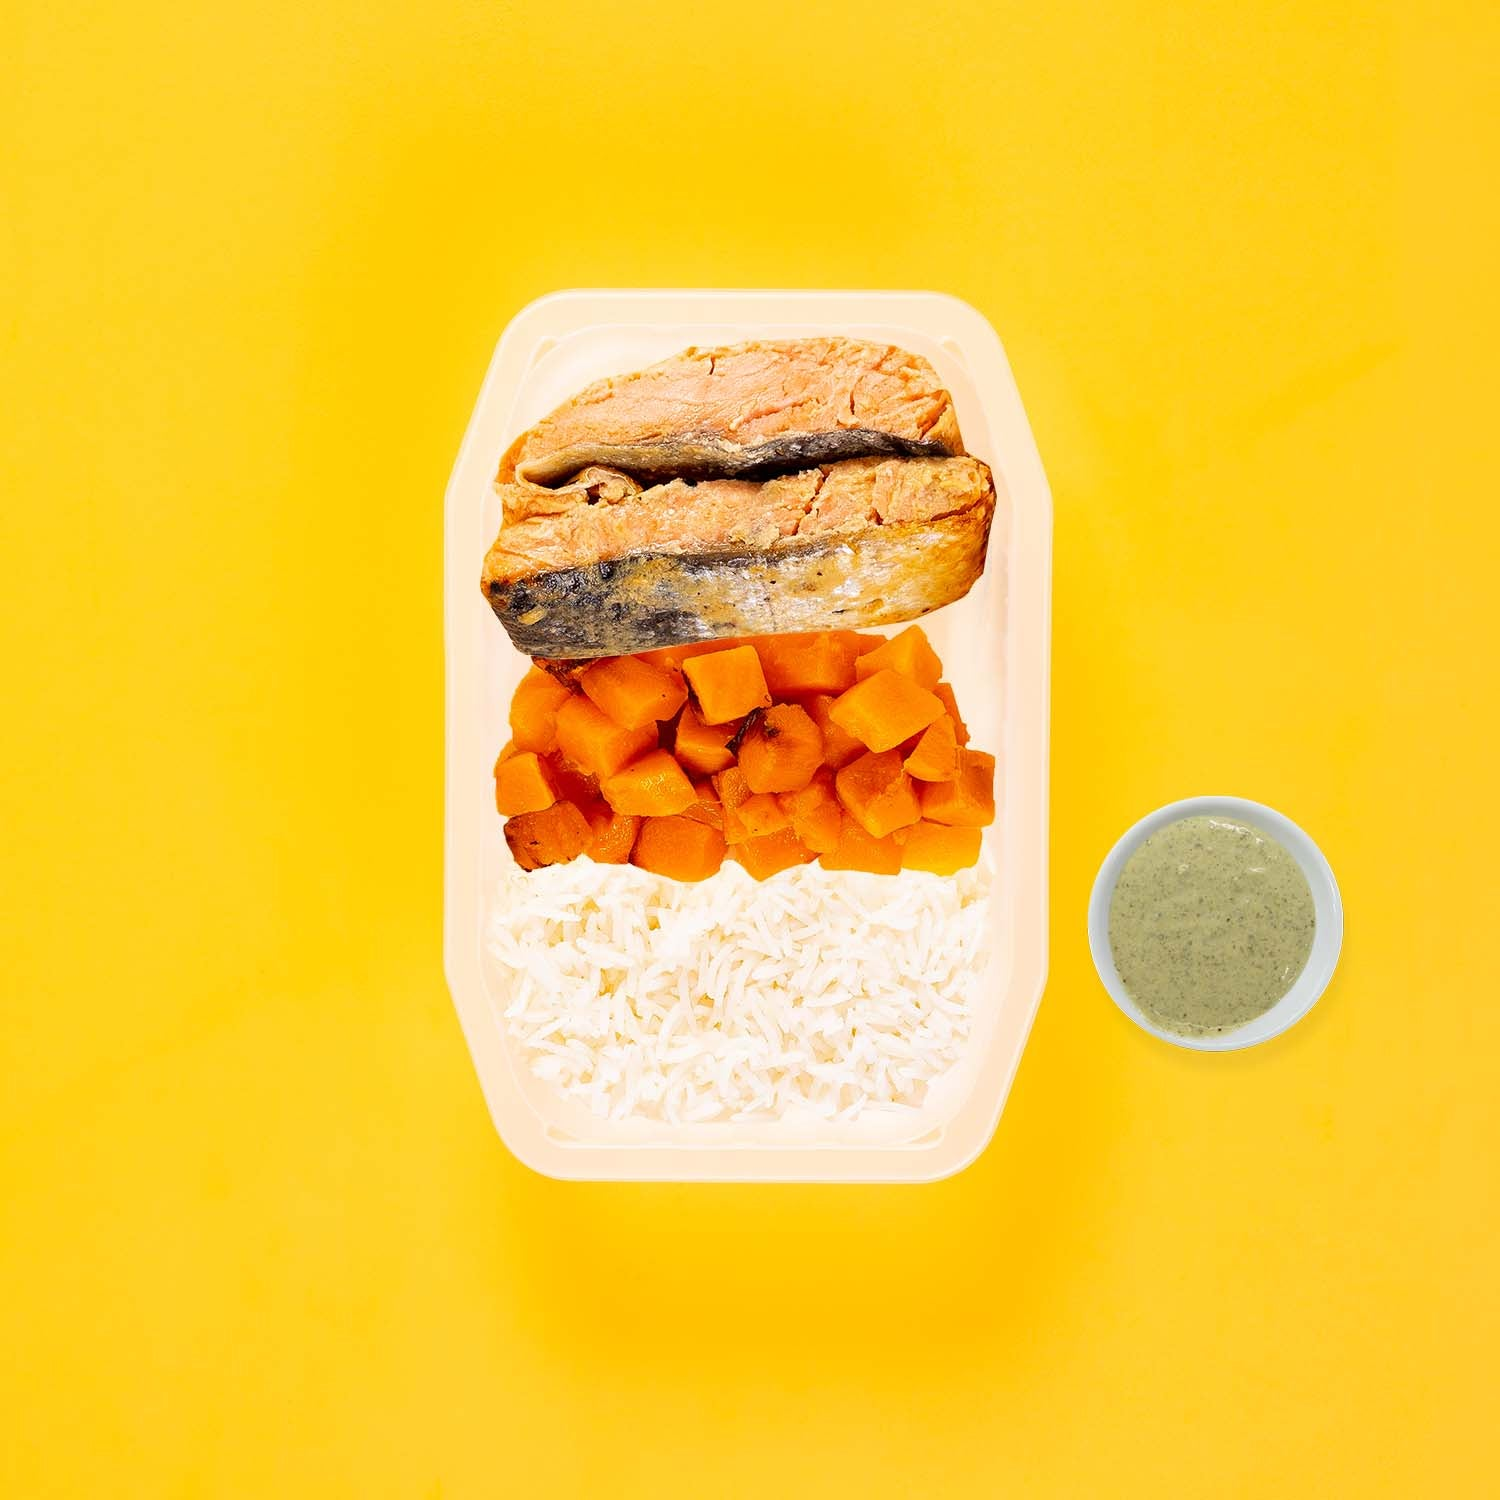 50g Miso Salmon 150g Coconut Pumpkin 100g Basmati Rice Pesto Cream